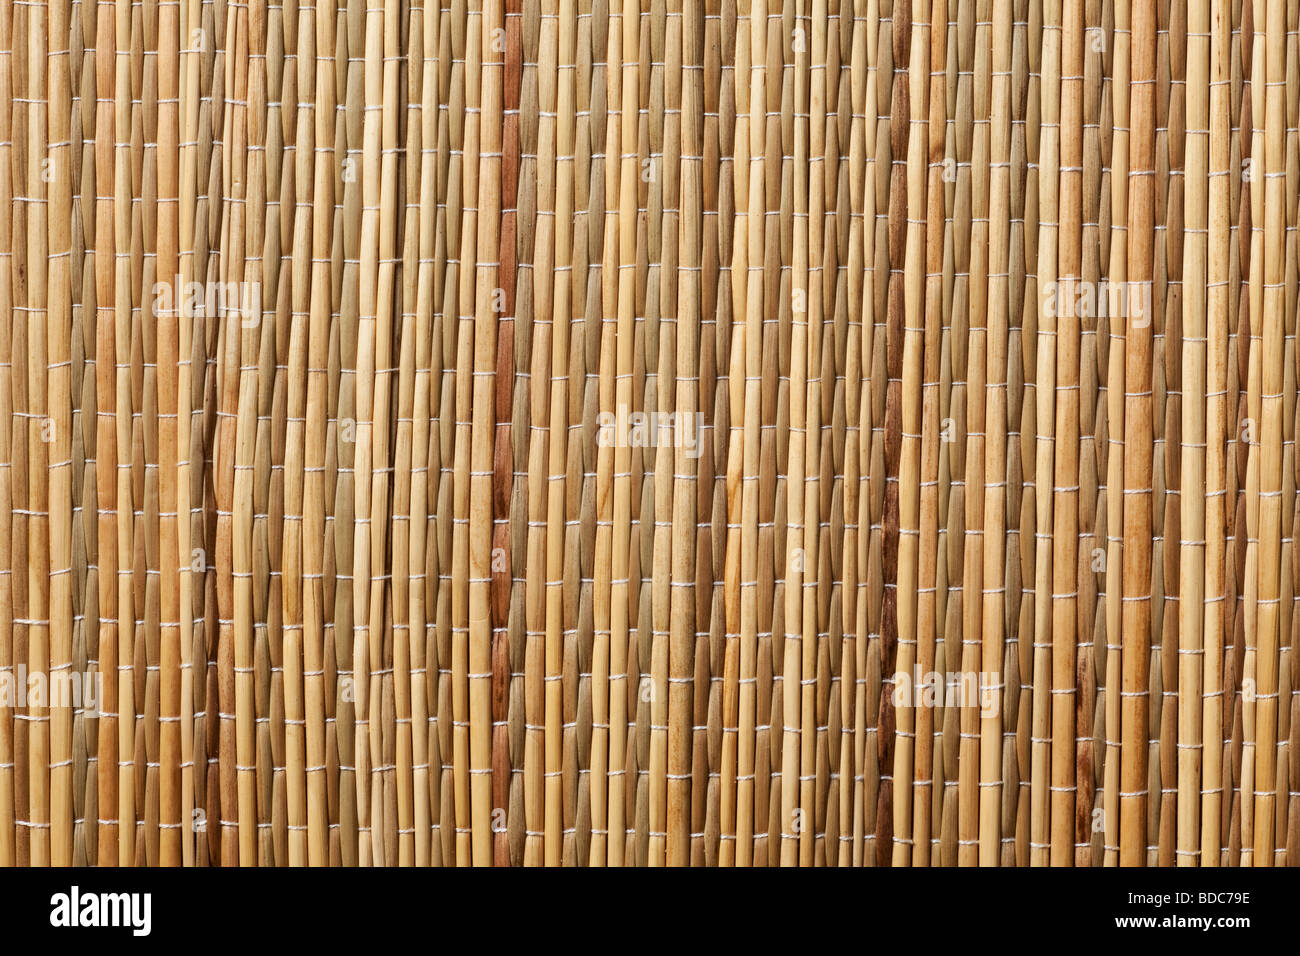 grass mat background in brown tones - Stock Image